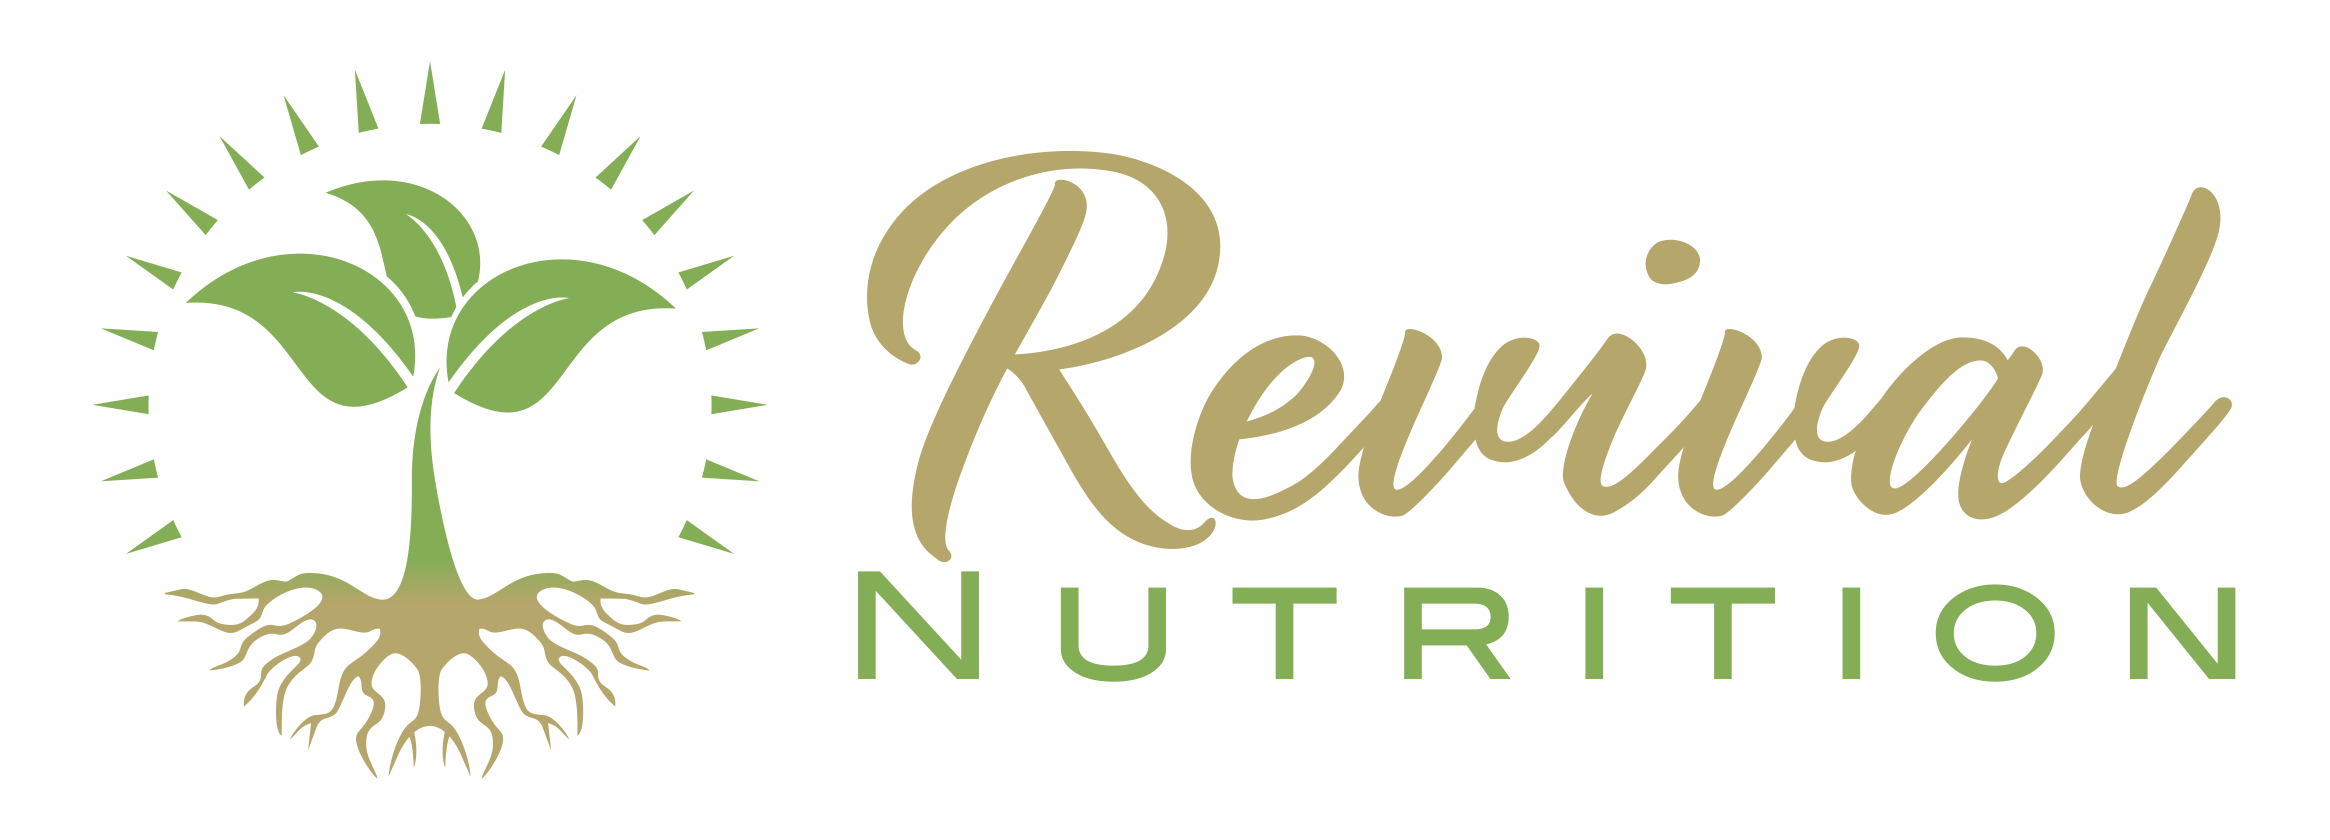 Revival Nutrition | Dietitian & Nutrition Counseling Services Denver